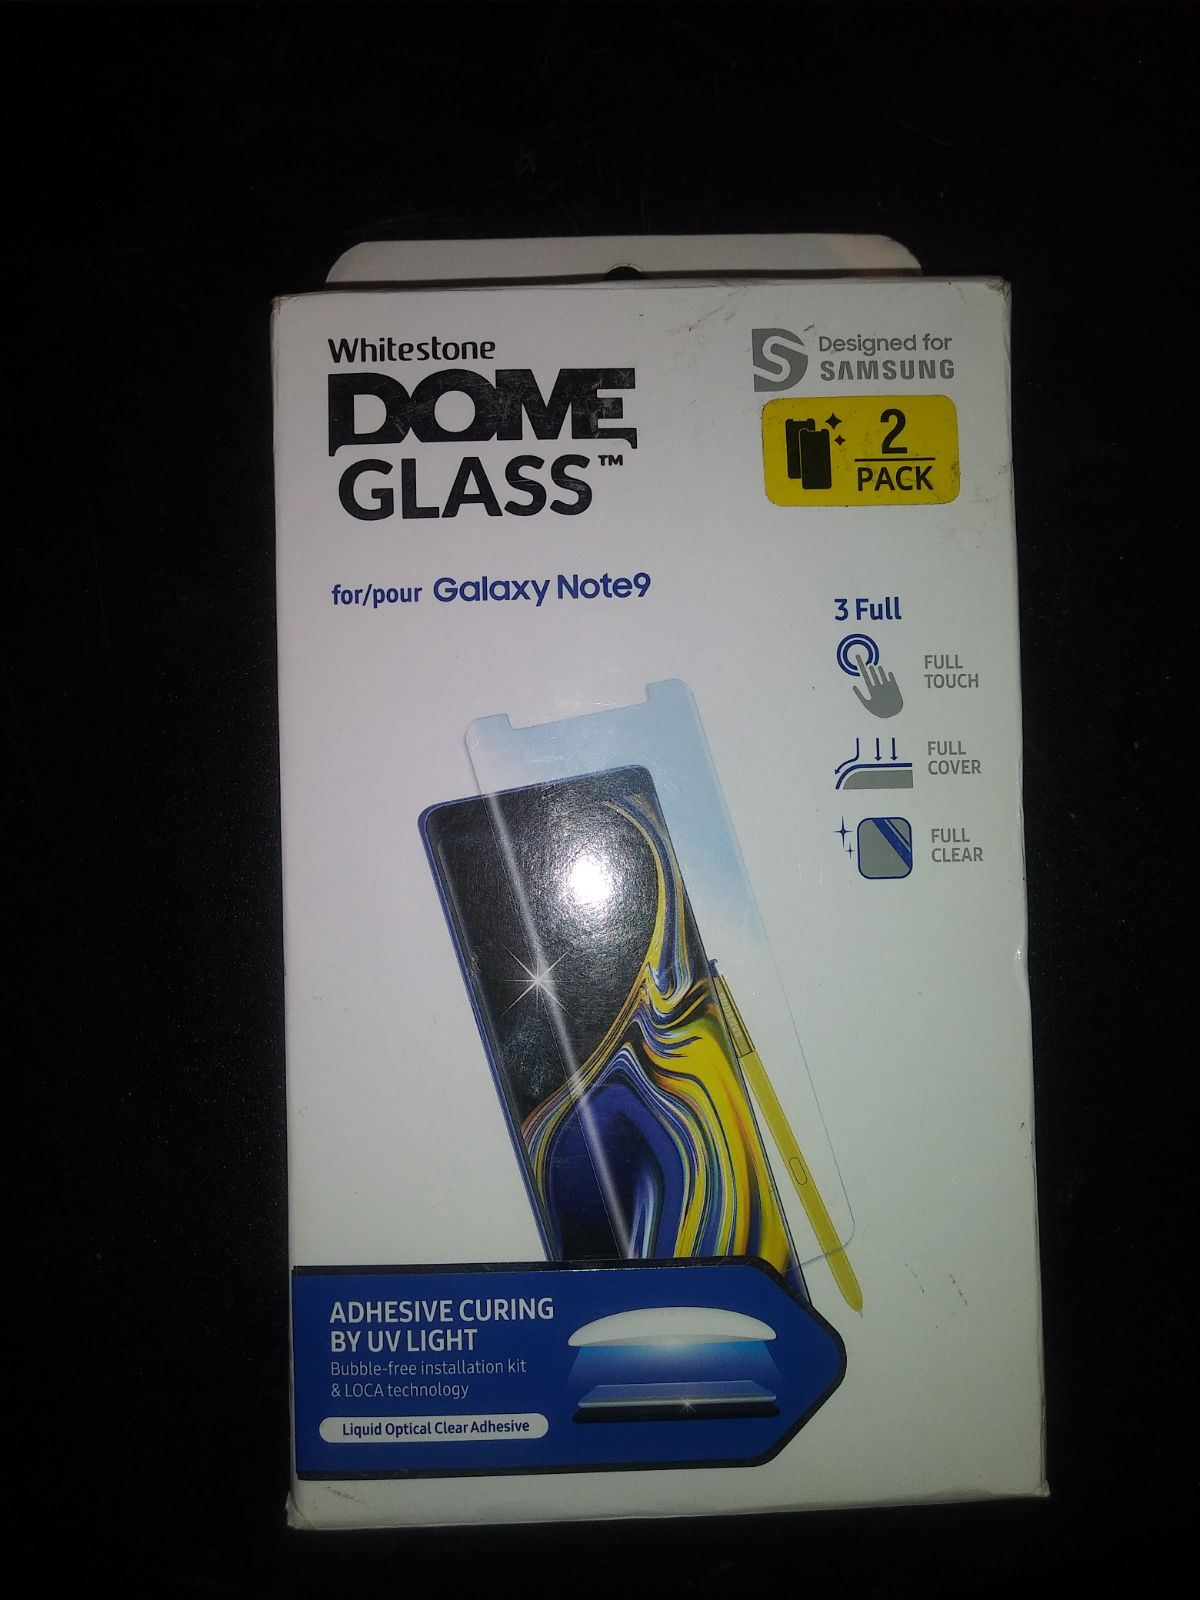 2x pack Note 9 dome glass Kit